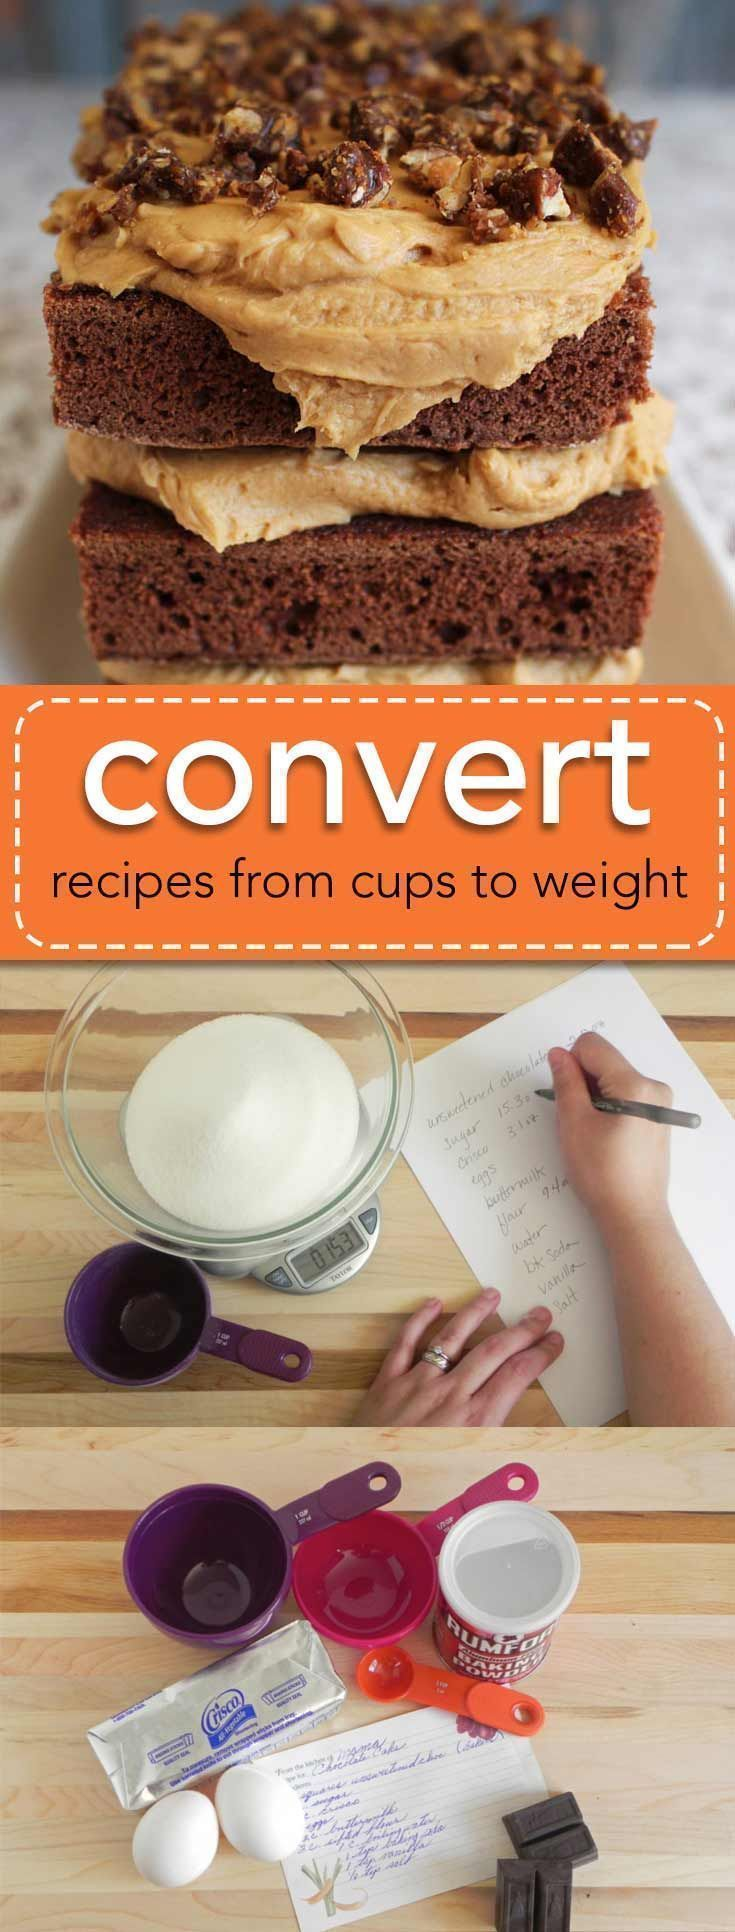 Converting recipes from cups to ounces (or grams) is daunting. But you can convert your tried and true recipes easily using my method. It takes a few extra minutes, but you'll get perfect results with your recipes every time! via @karascakes | baking | convert measurement | weighing ingredients | #baking #measuring